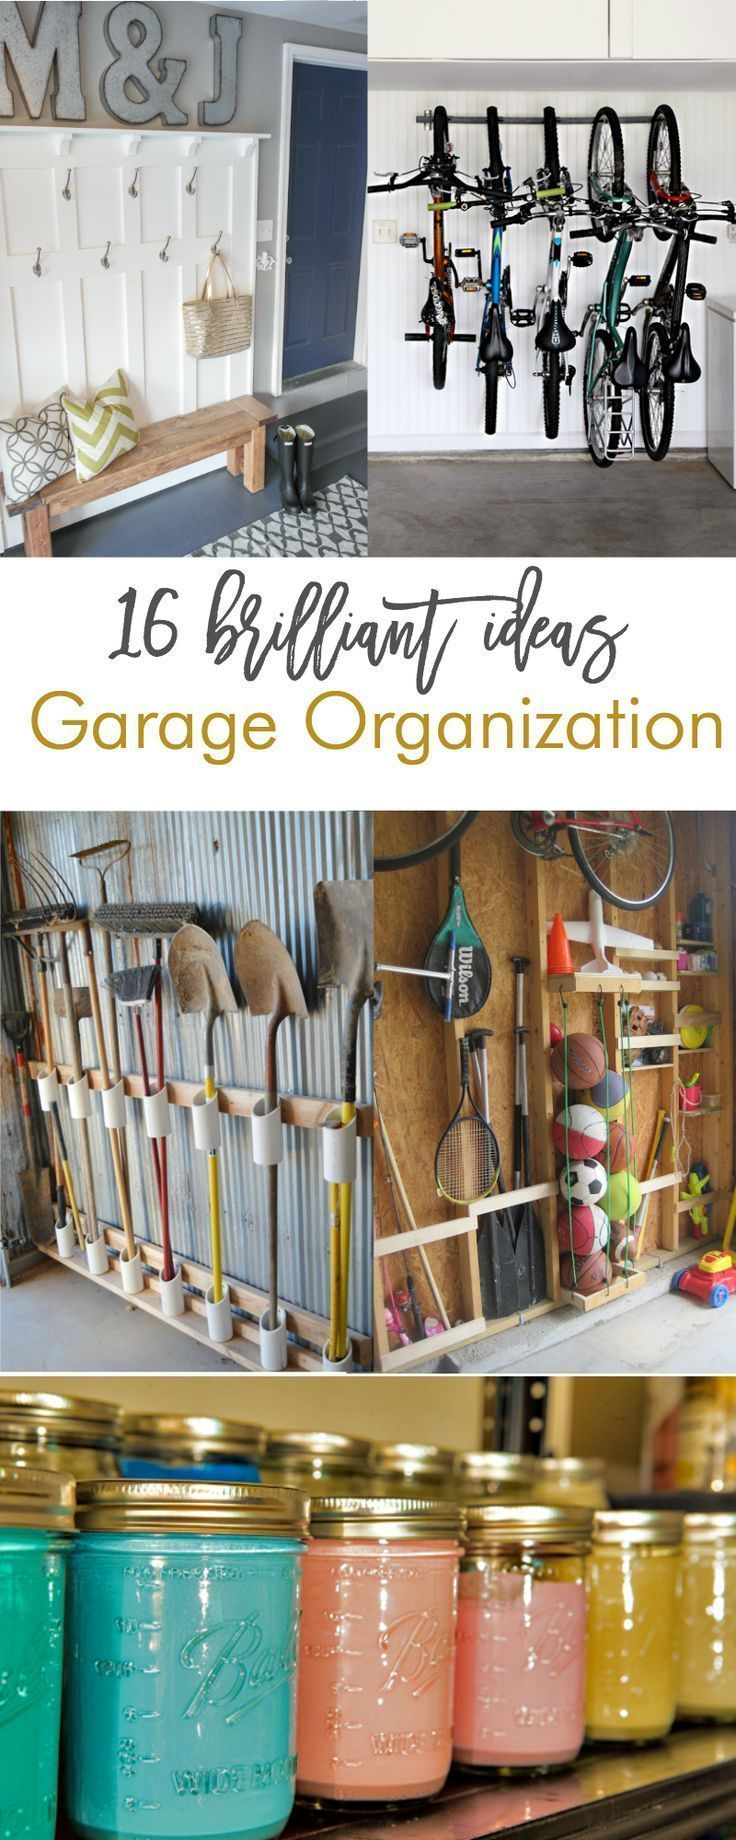 best 25 garage organization ideas only on pinterest garage 16 brilliant diy garage organization ideas